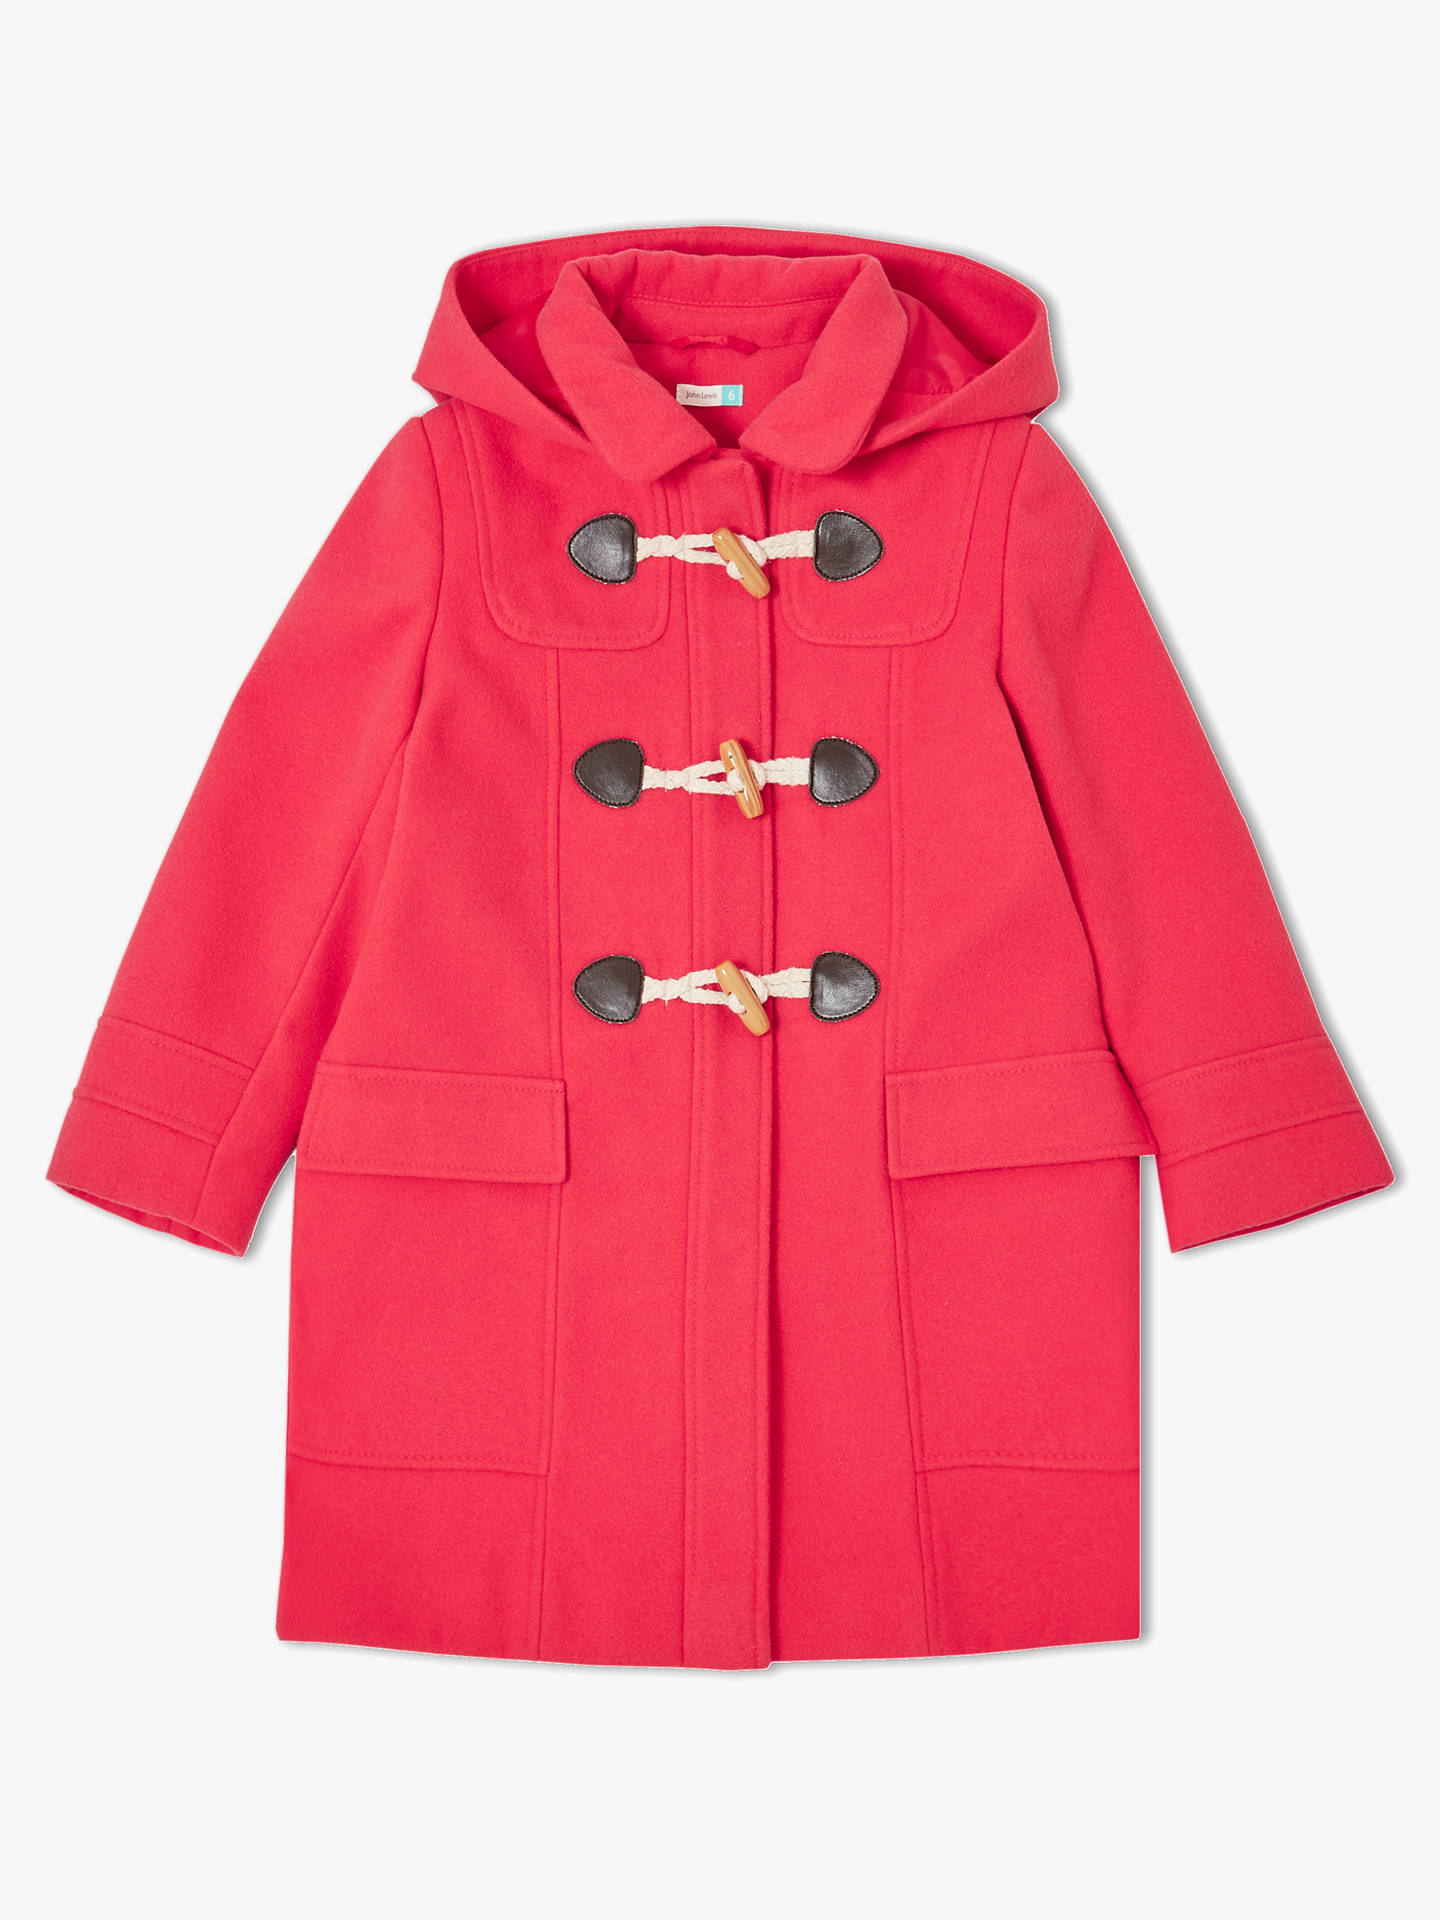 Duffle Coats For Boys And Girls